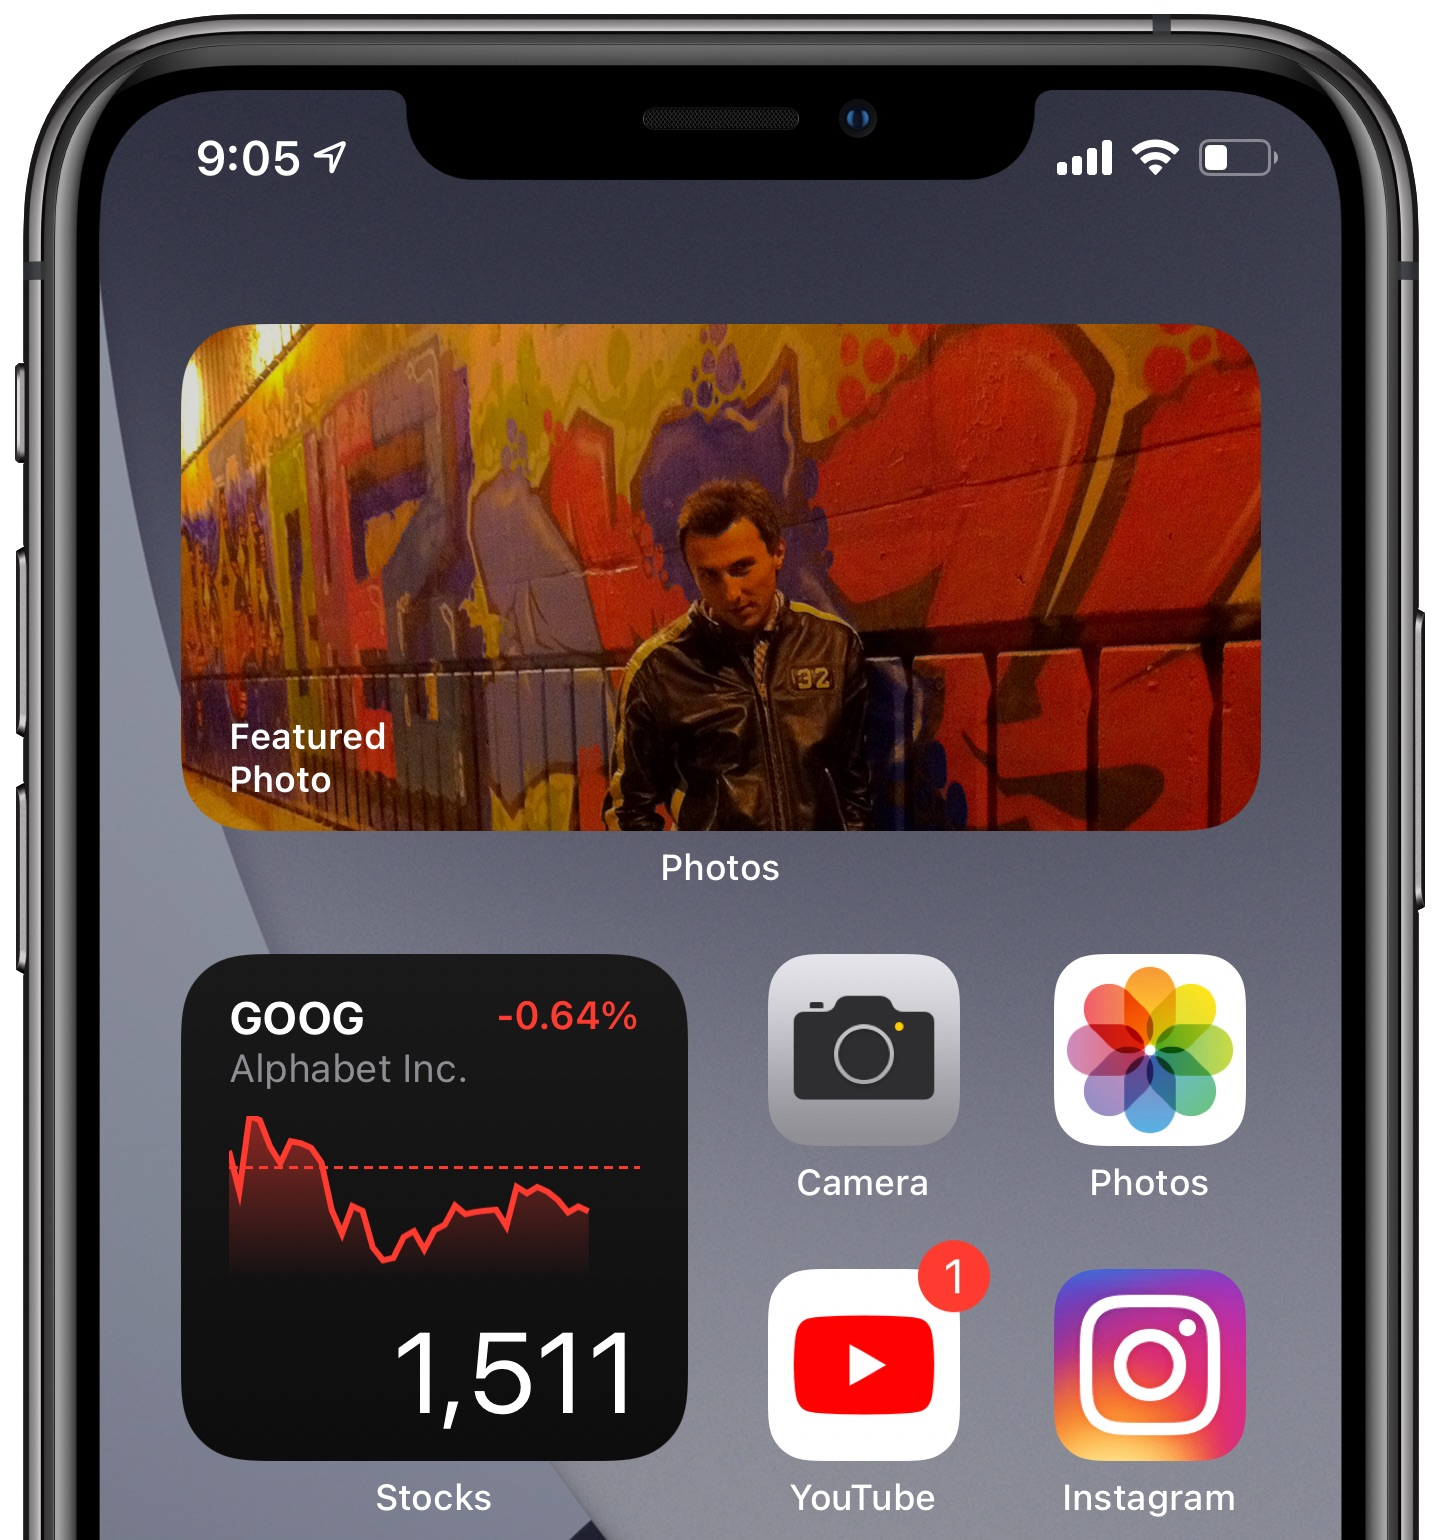 create widget stacks iPhone Home screen - hero image